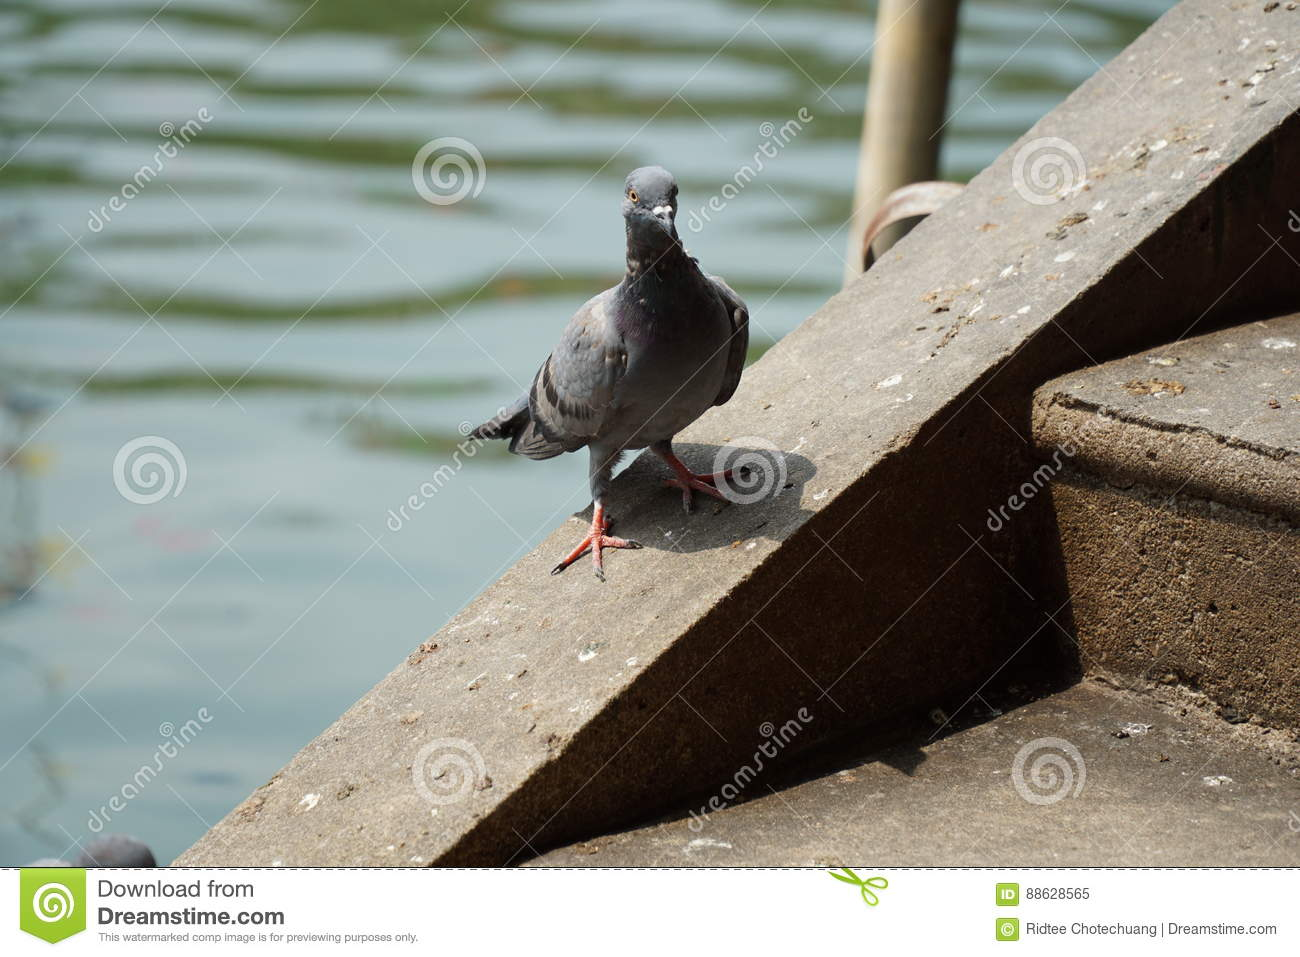 Dove or pigeon on the floor stock image cartoondealer for On the floor